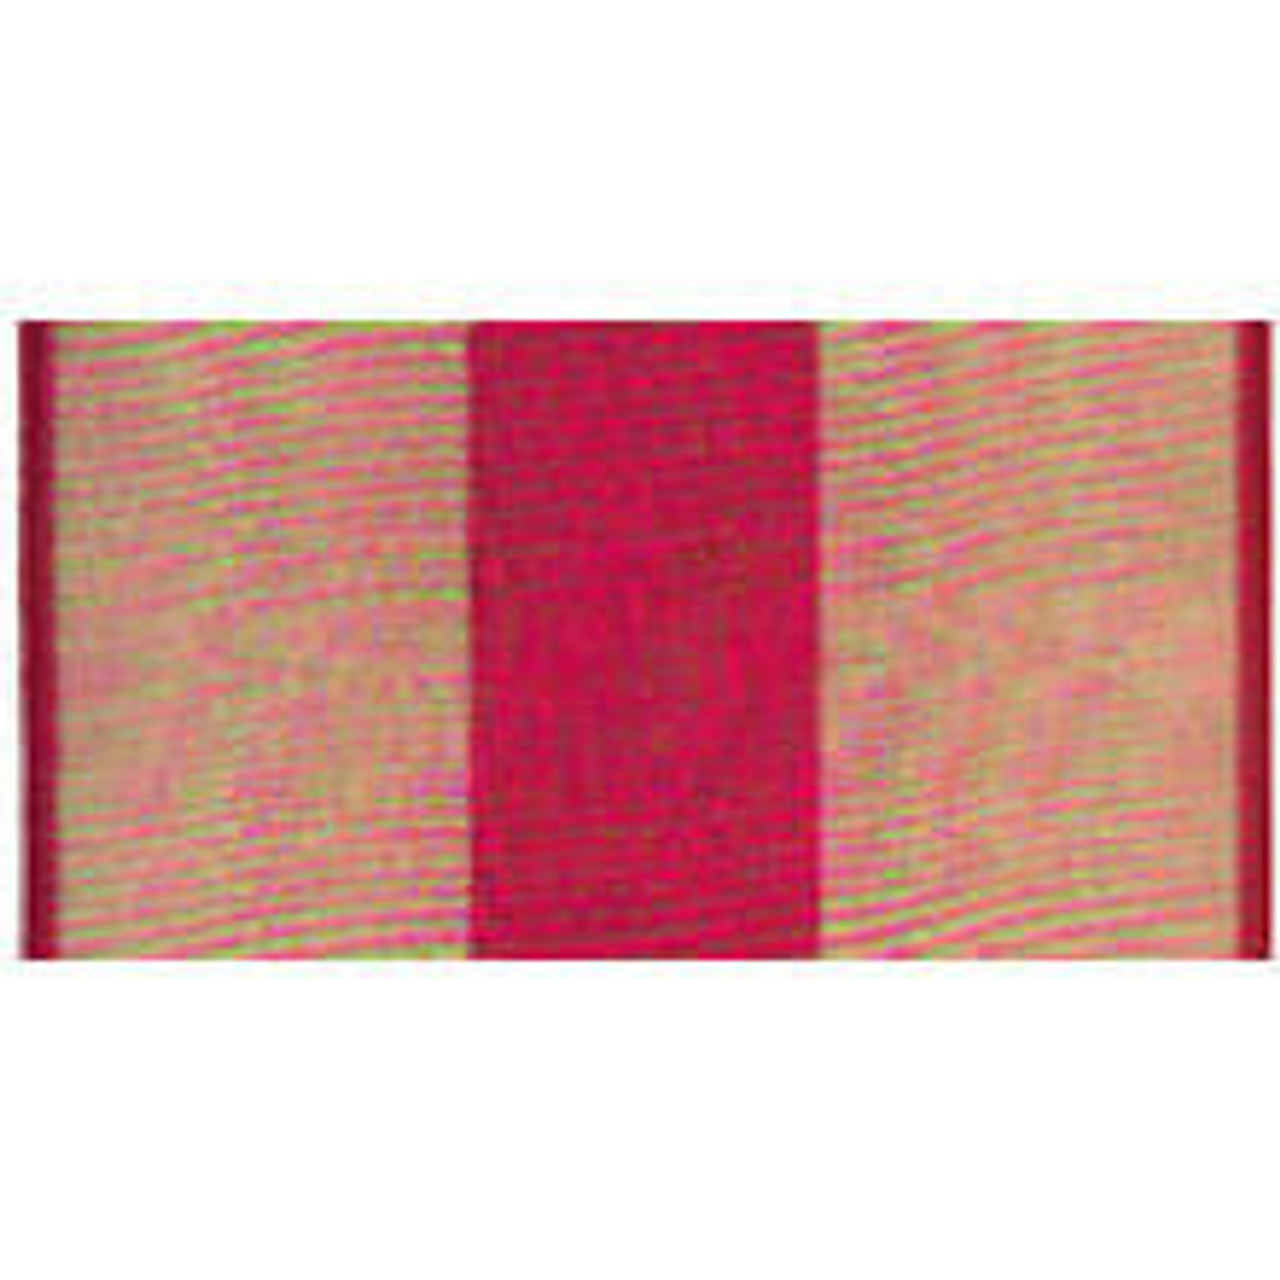 Marine Corps Expeditionary Streamer made of rayon with grommet or sleeve at top. Design is a central red vertical rectangle and 2 larger gold rectangles on either side bordered by 2 thing vertical red lines.